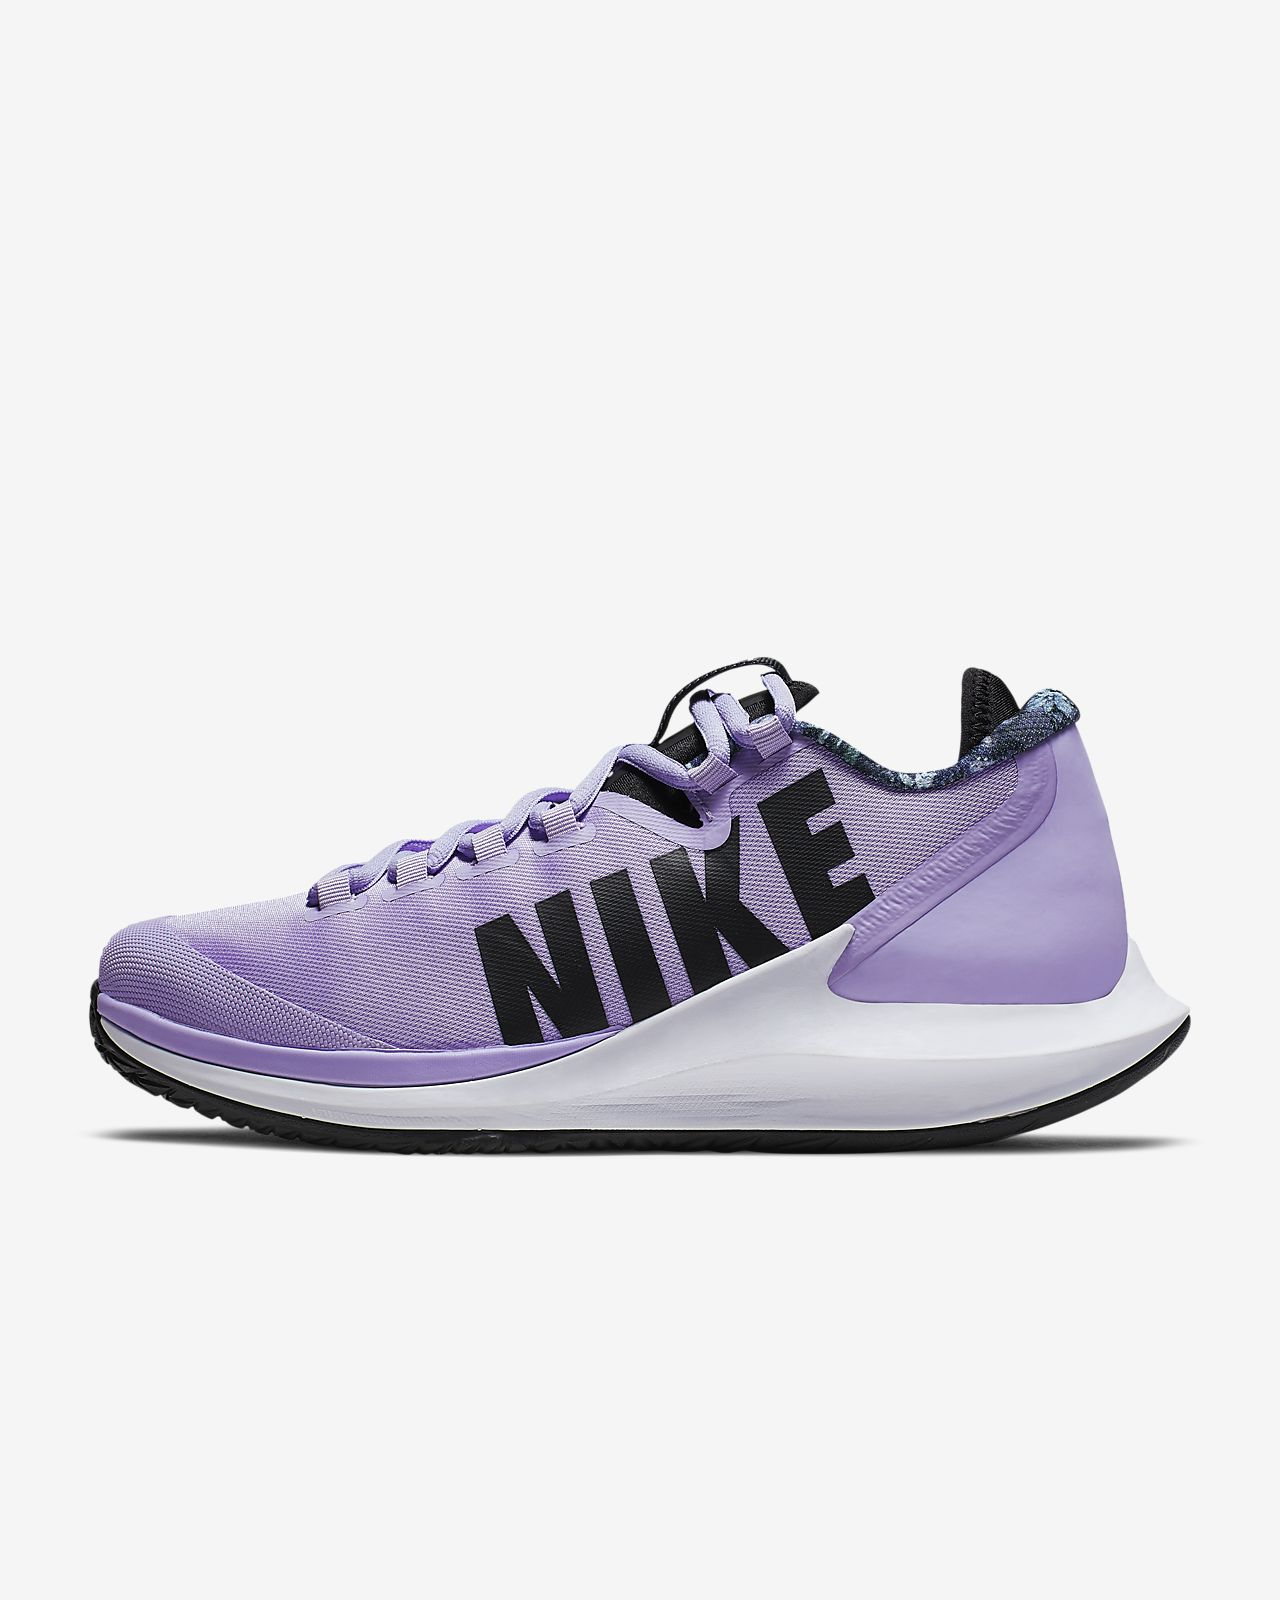 Scarpa da tennis NikeCourt Air Zoom Zero - Donna